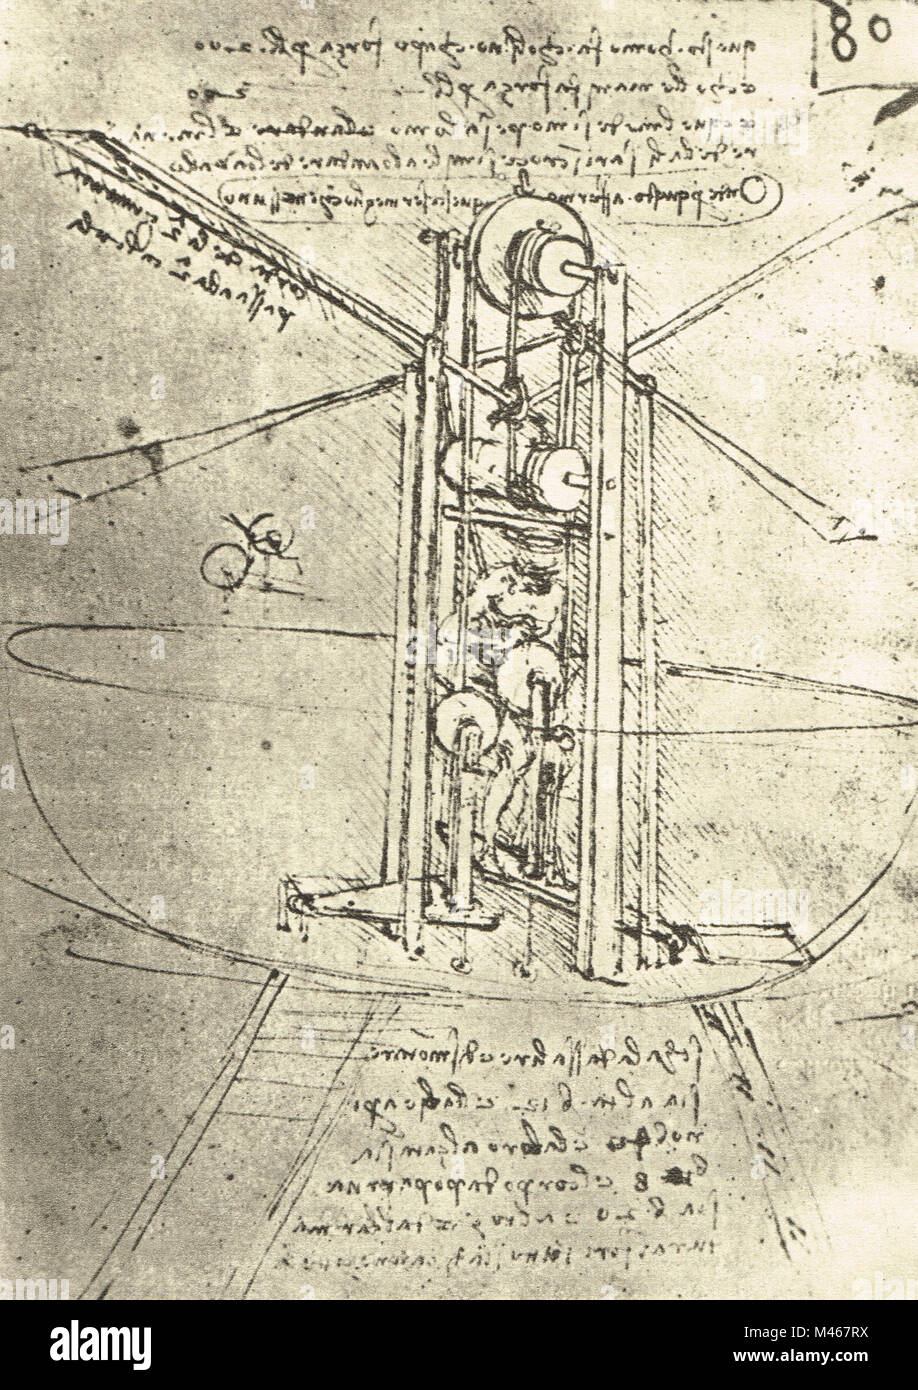 Man powered flying machine with helicopter like blades, drawn by Leonardo Da Vinci, Circa 1488-9 - Stock Image